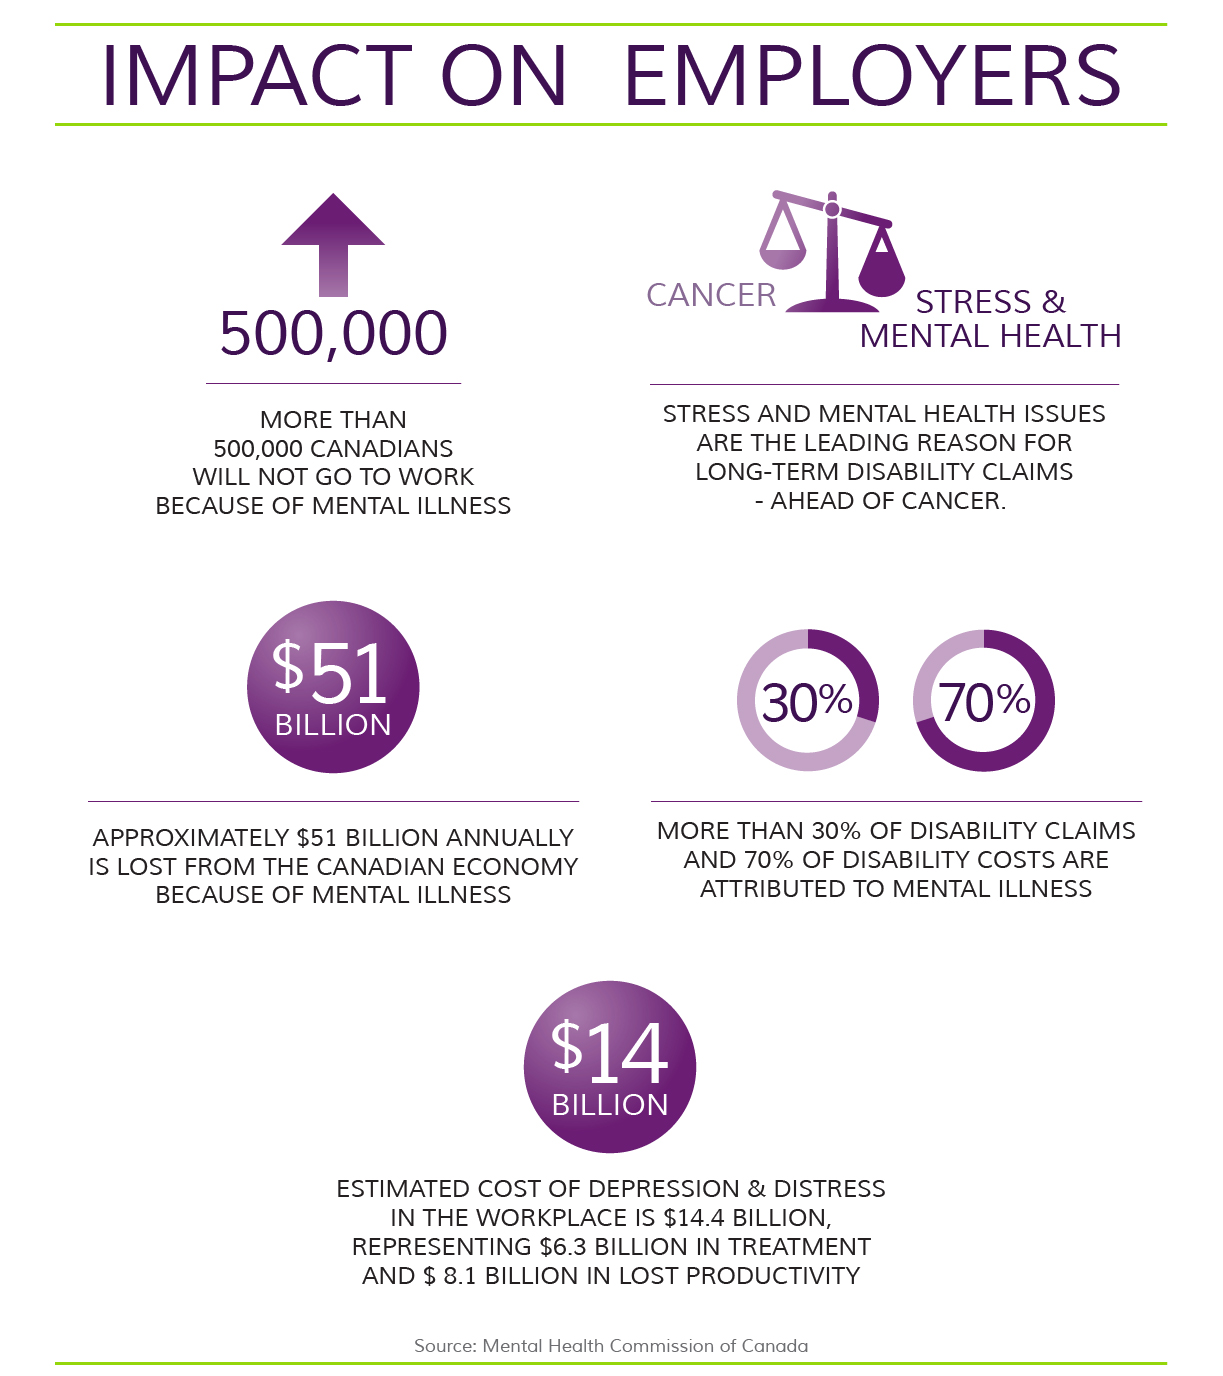 Impact of Stress on Employers Infographic